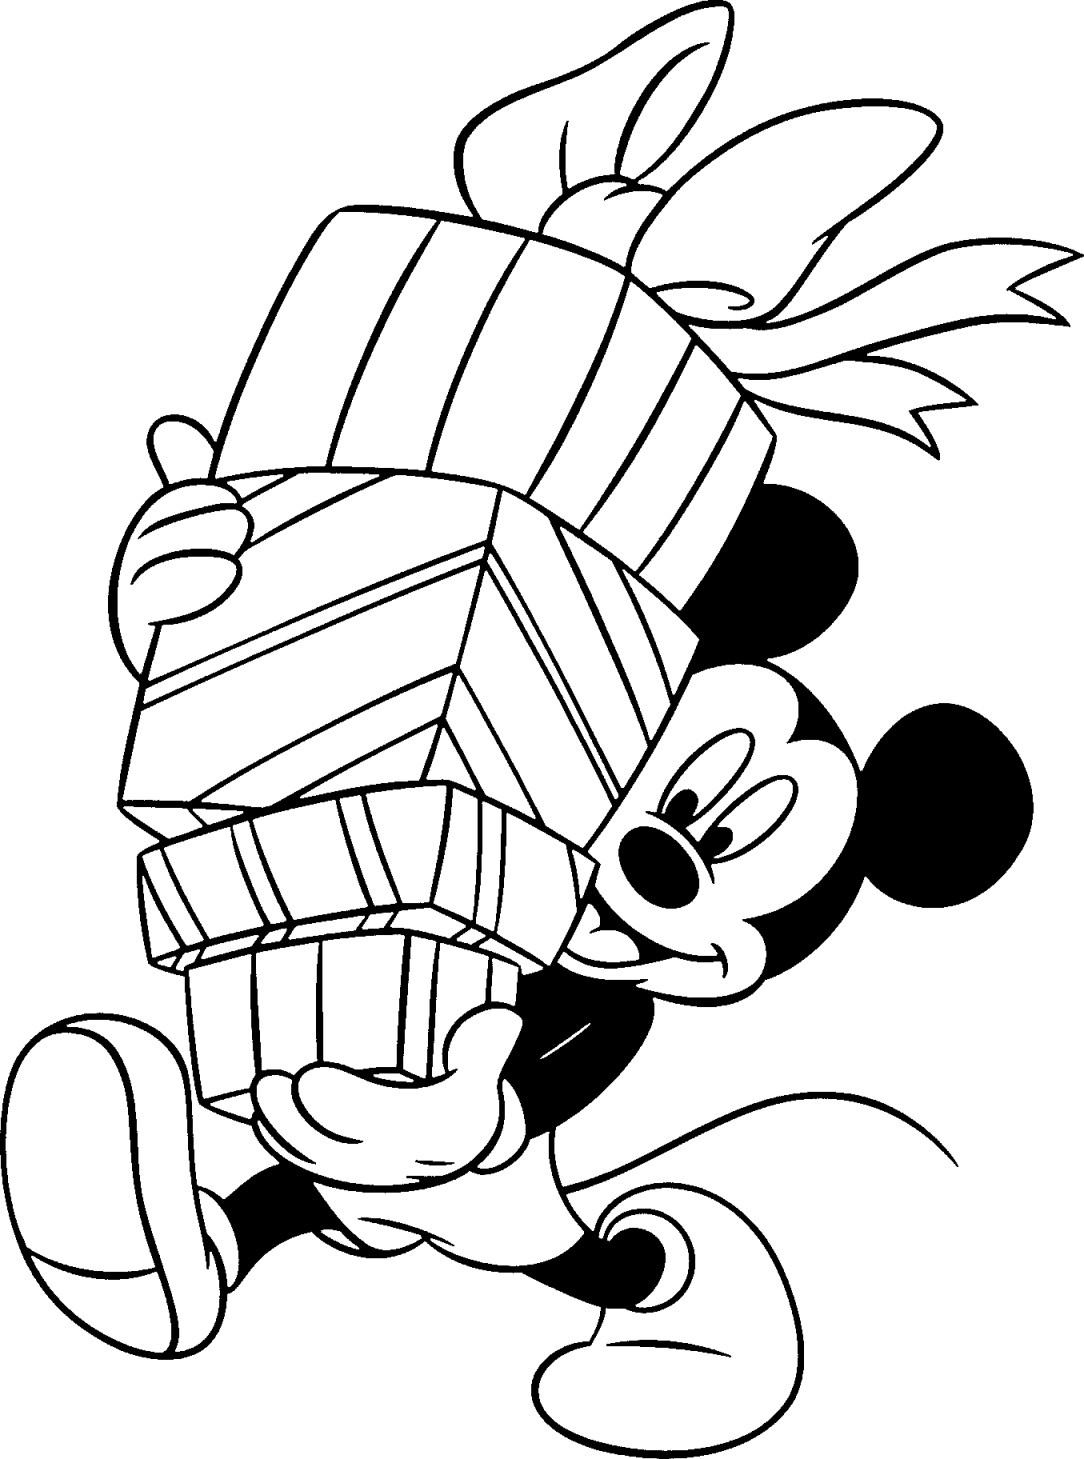 Christmas Colouring Pages Cute With Free Disney Printable Coloring For Kids Honey Lime